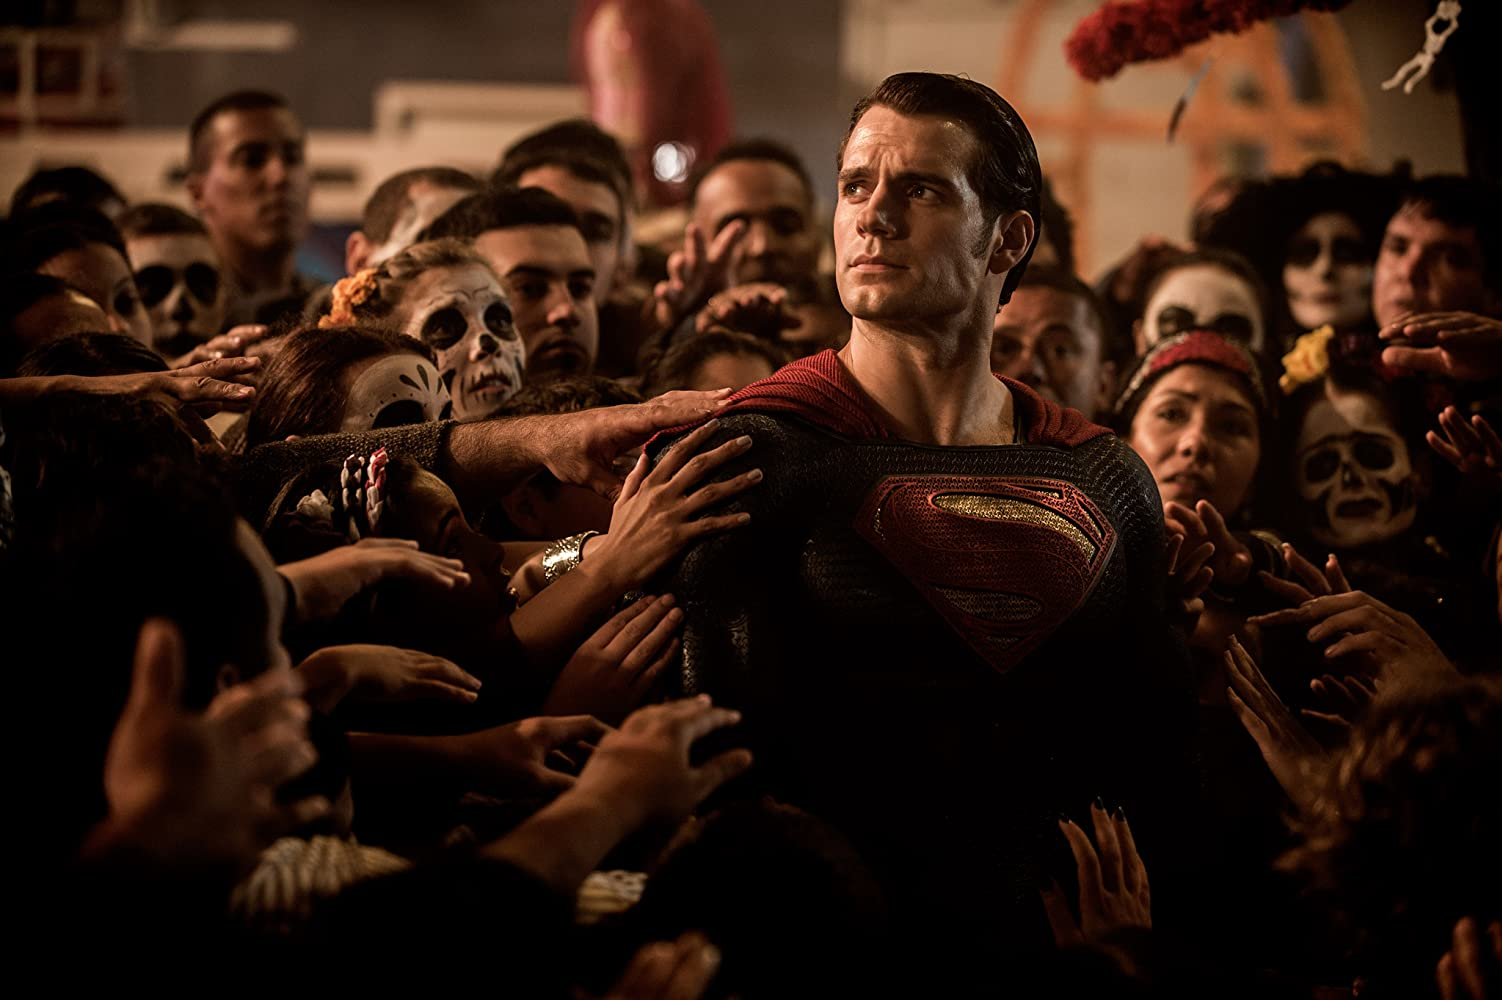 Henry Cavill in Batman v Superman: Dawn of Justice (2016)